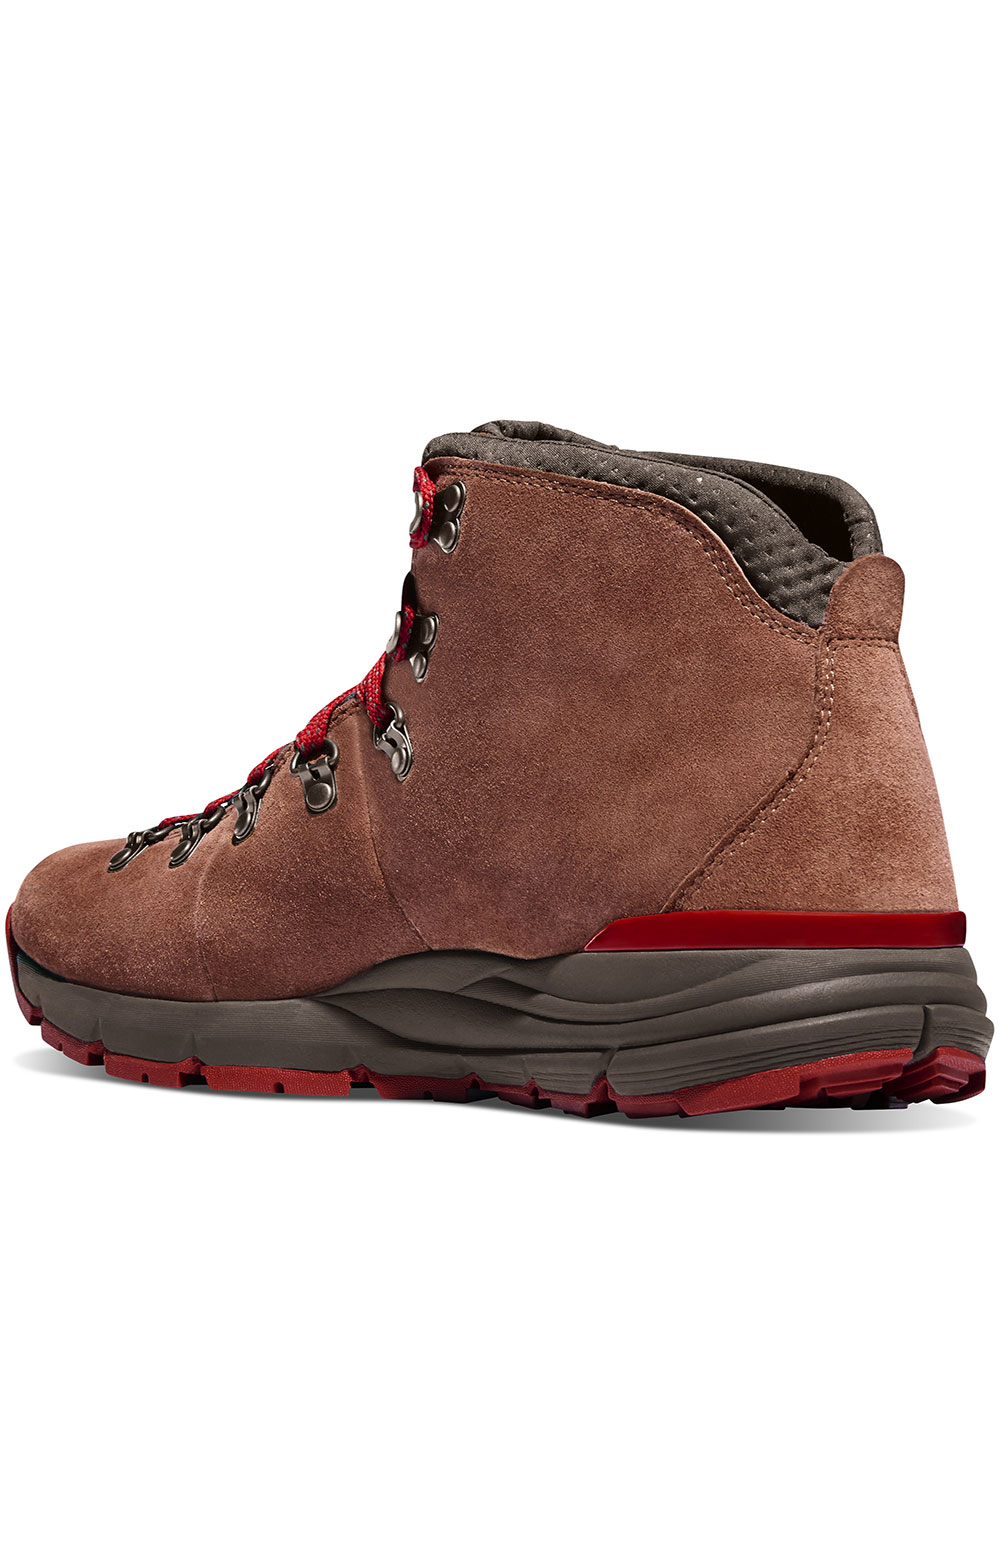 (62241) Mountain 600 Boots - Brown/Red 2